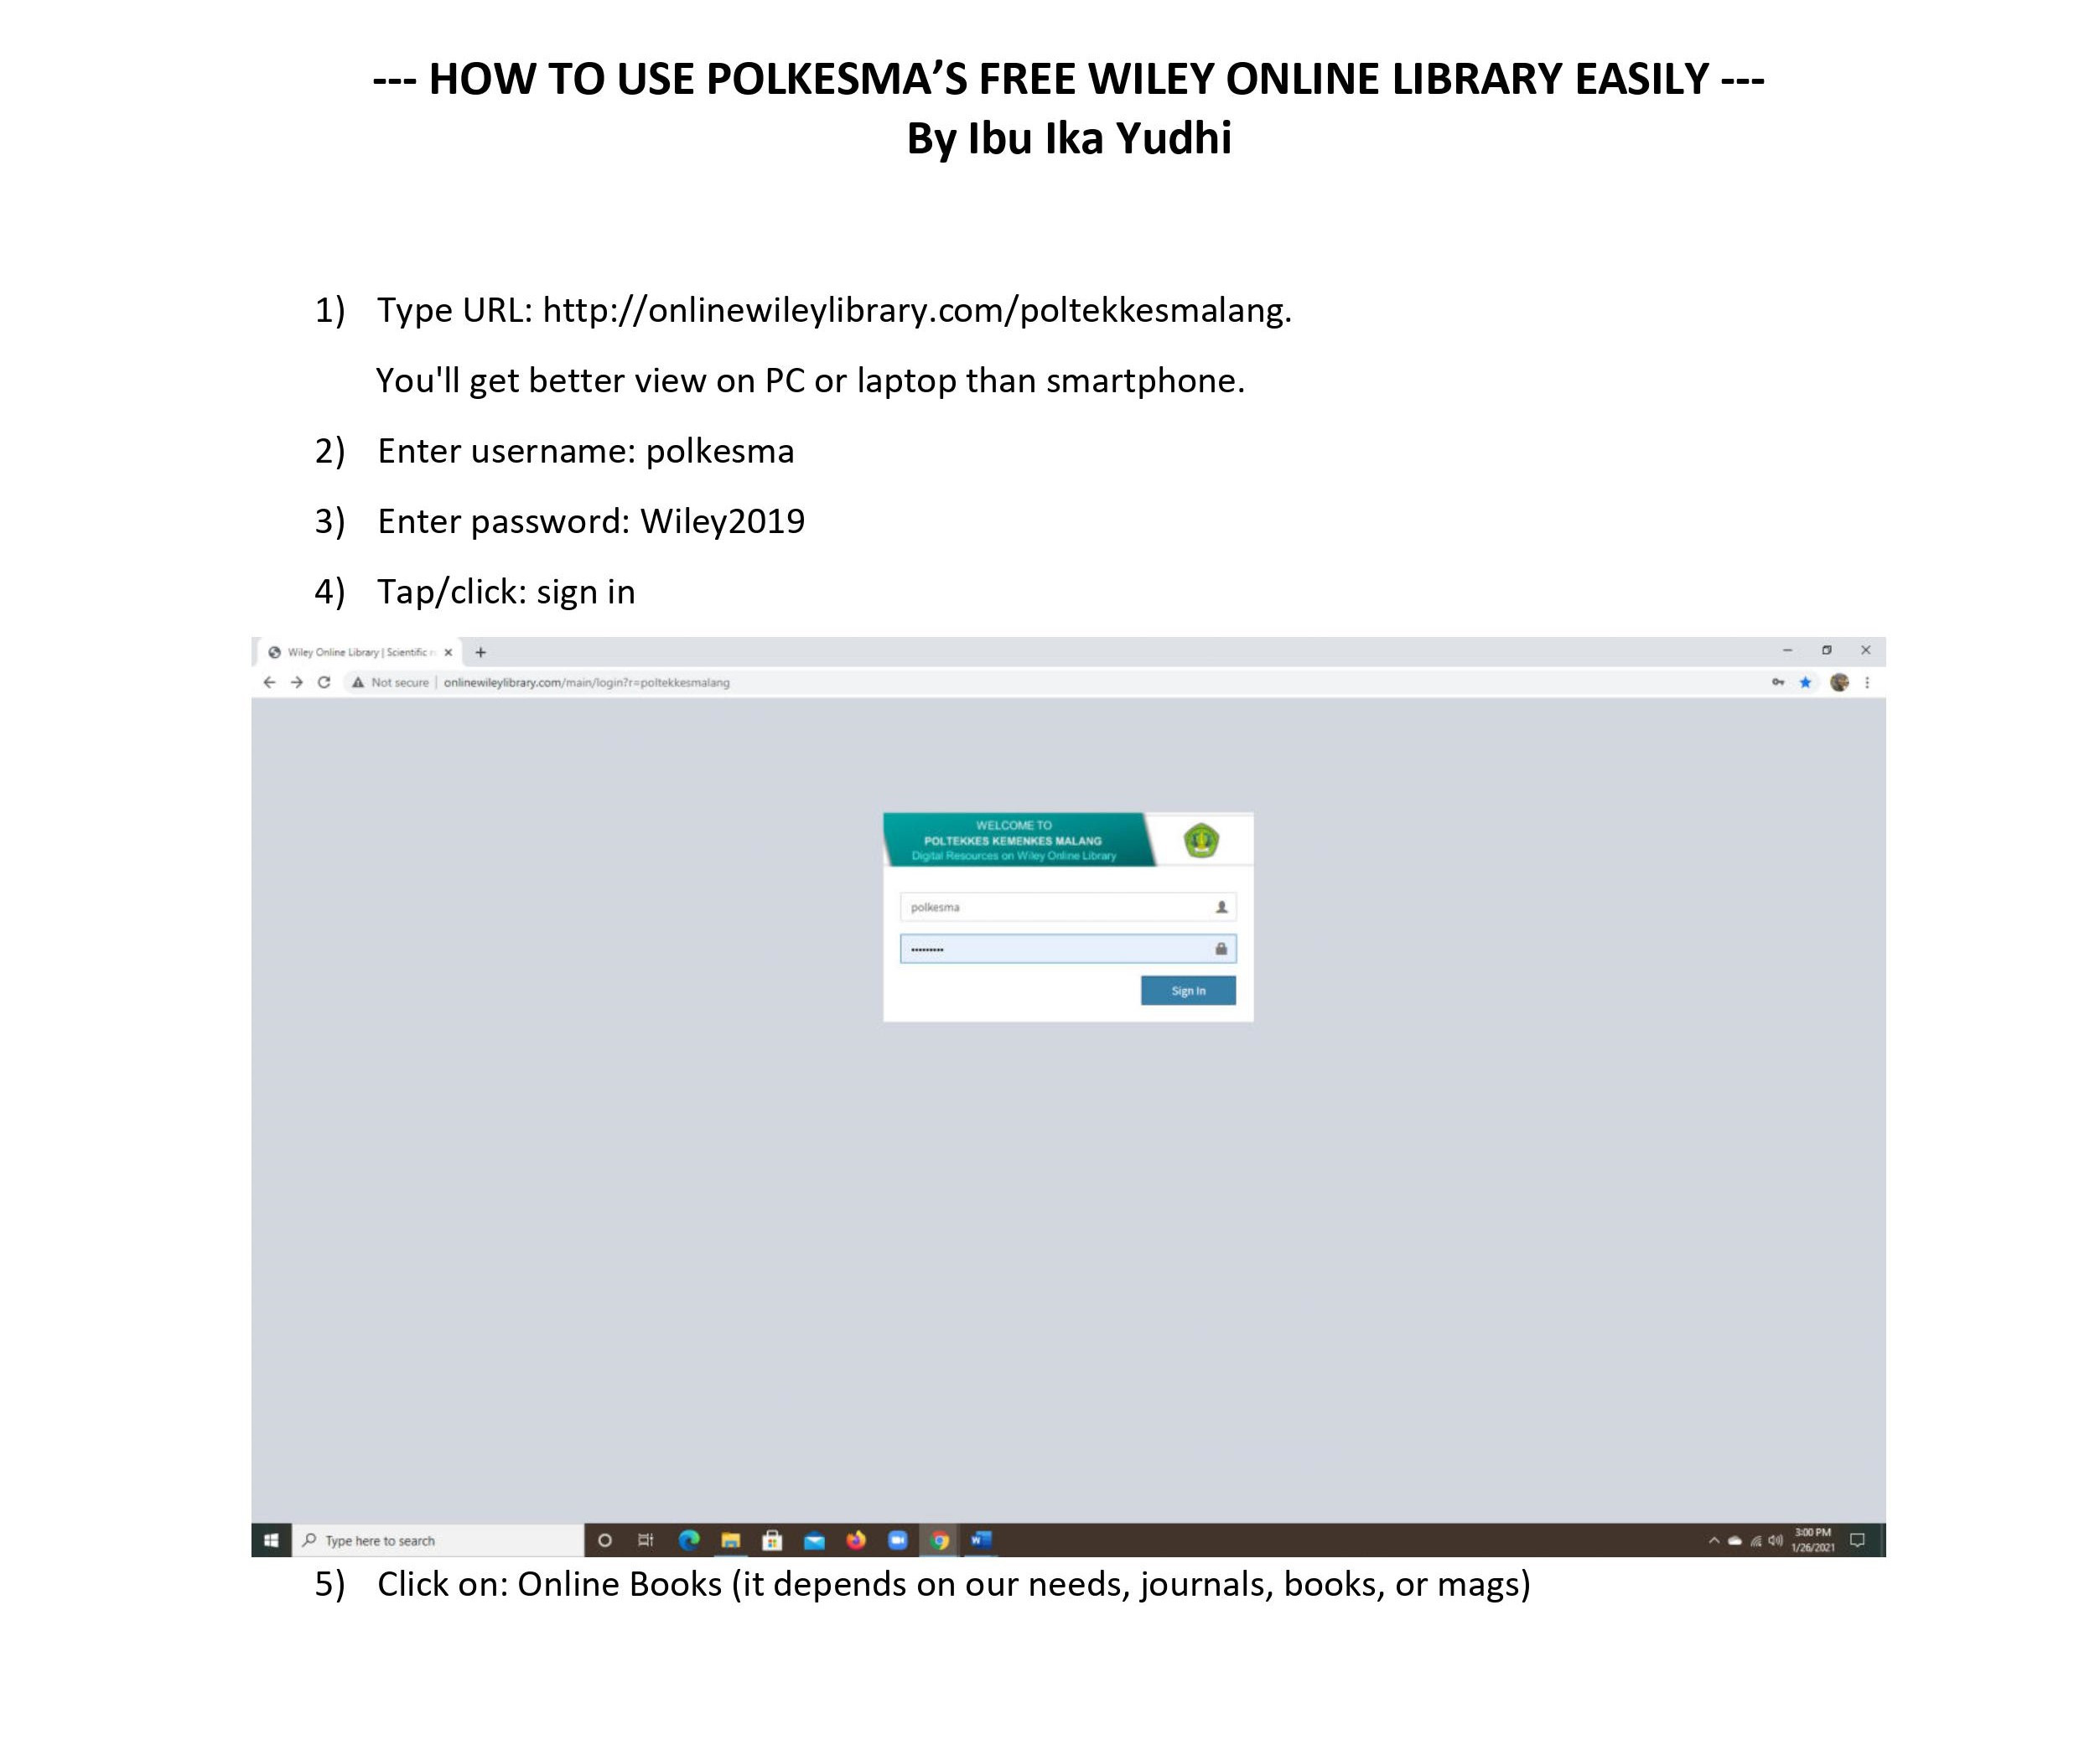 HOW TO USE POLKESMA FREE WILEY ONLINE LIBRARY EASILY